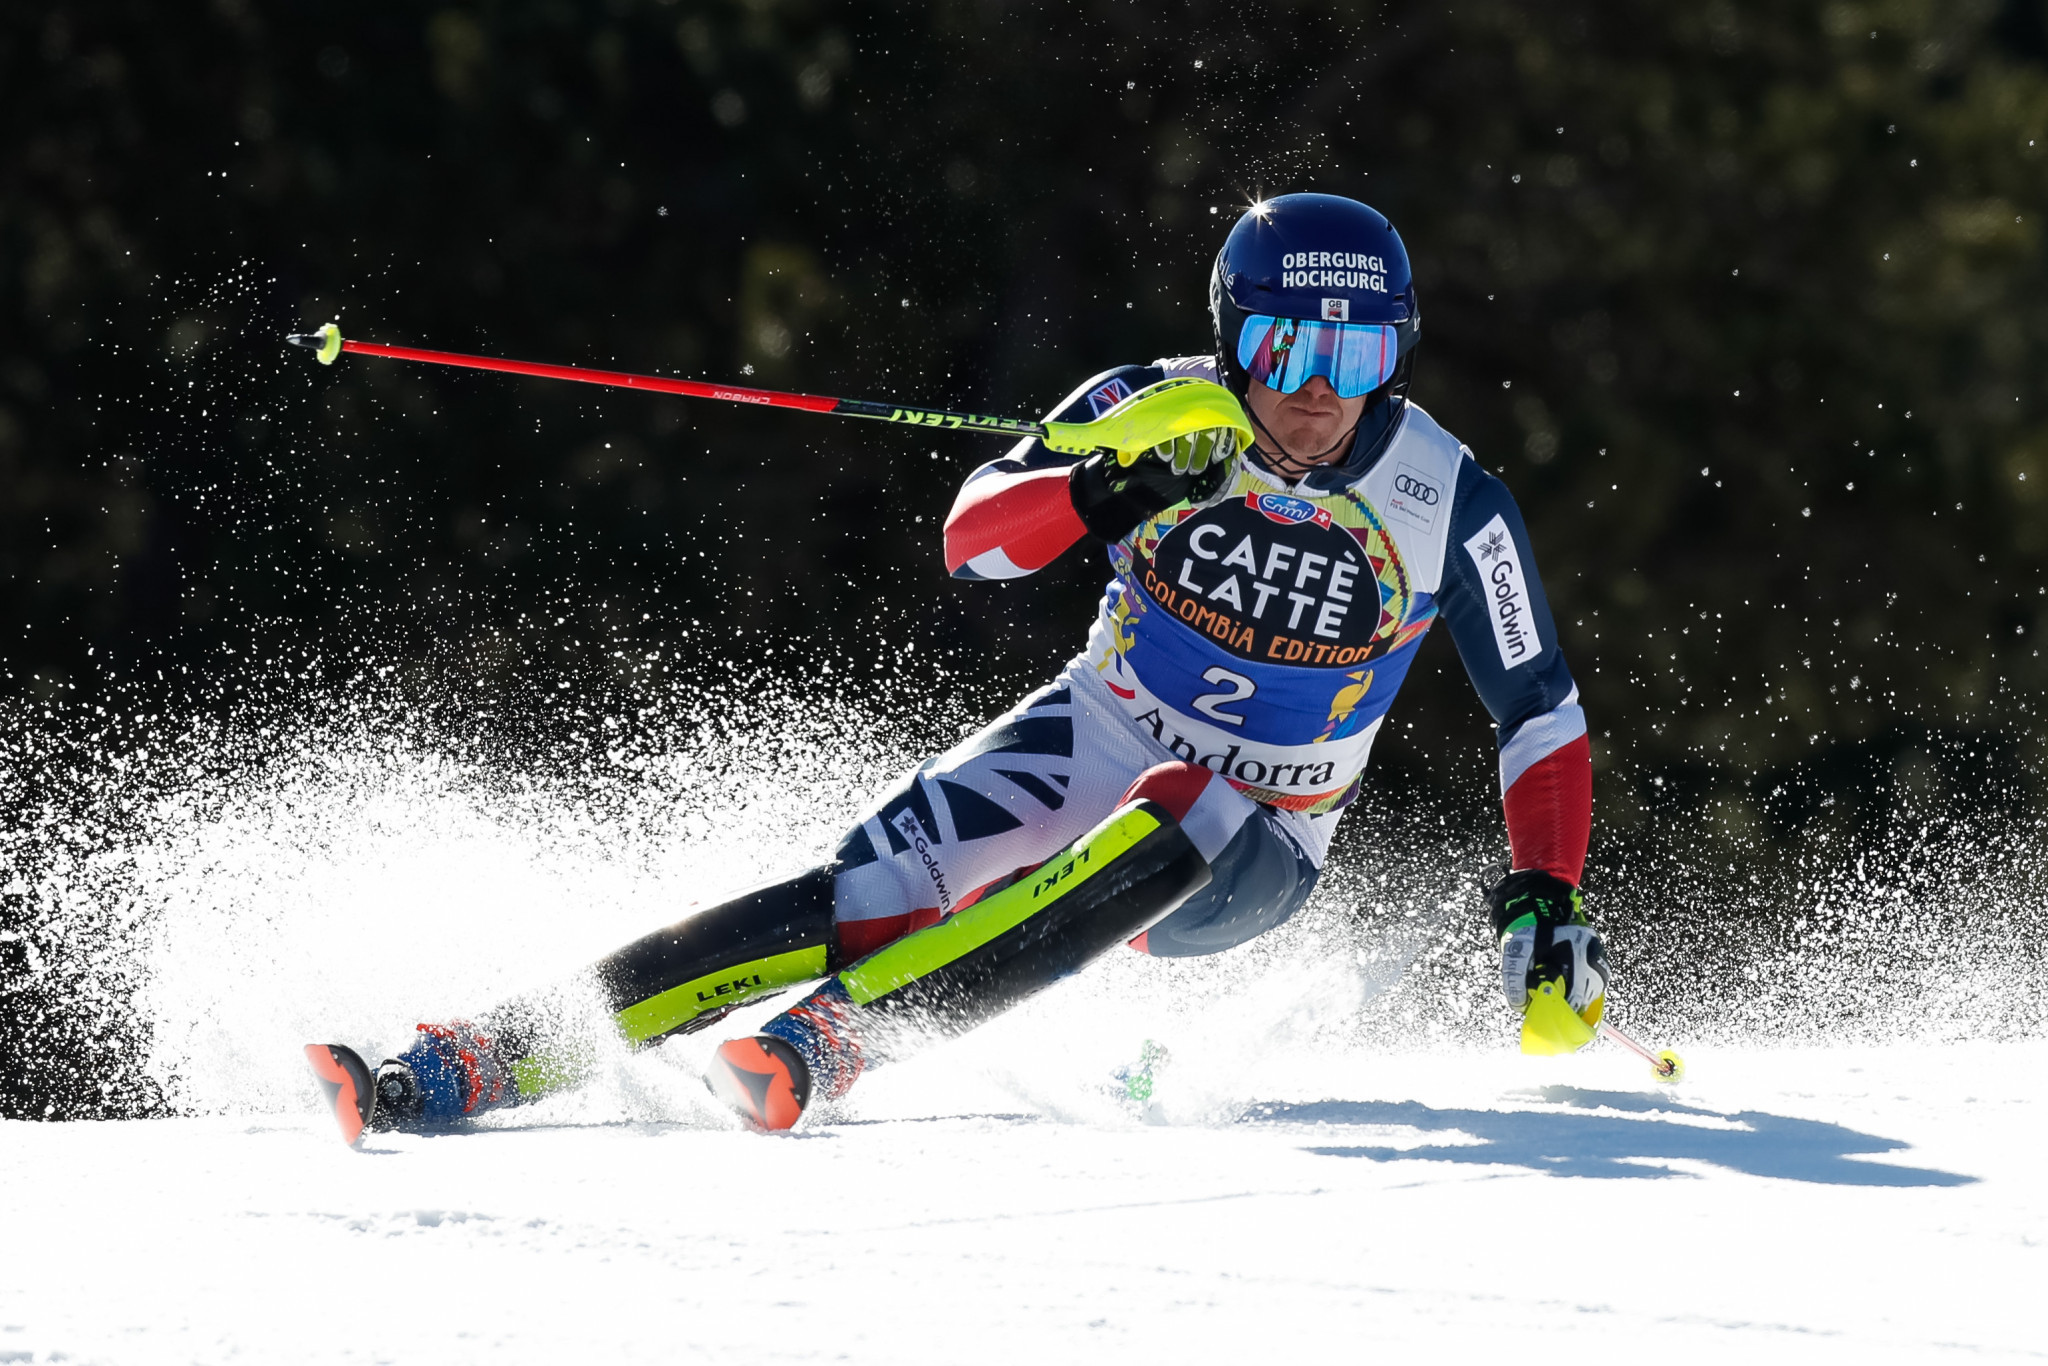 Britain select three athletes for FIS Alpine Ski World Cup squad